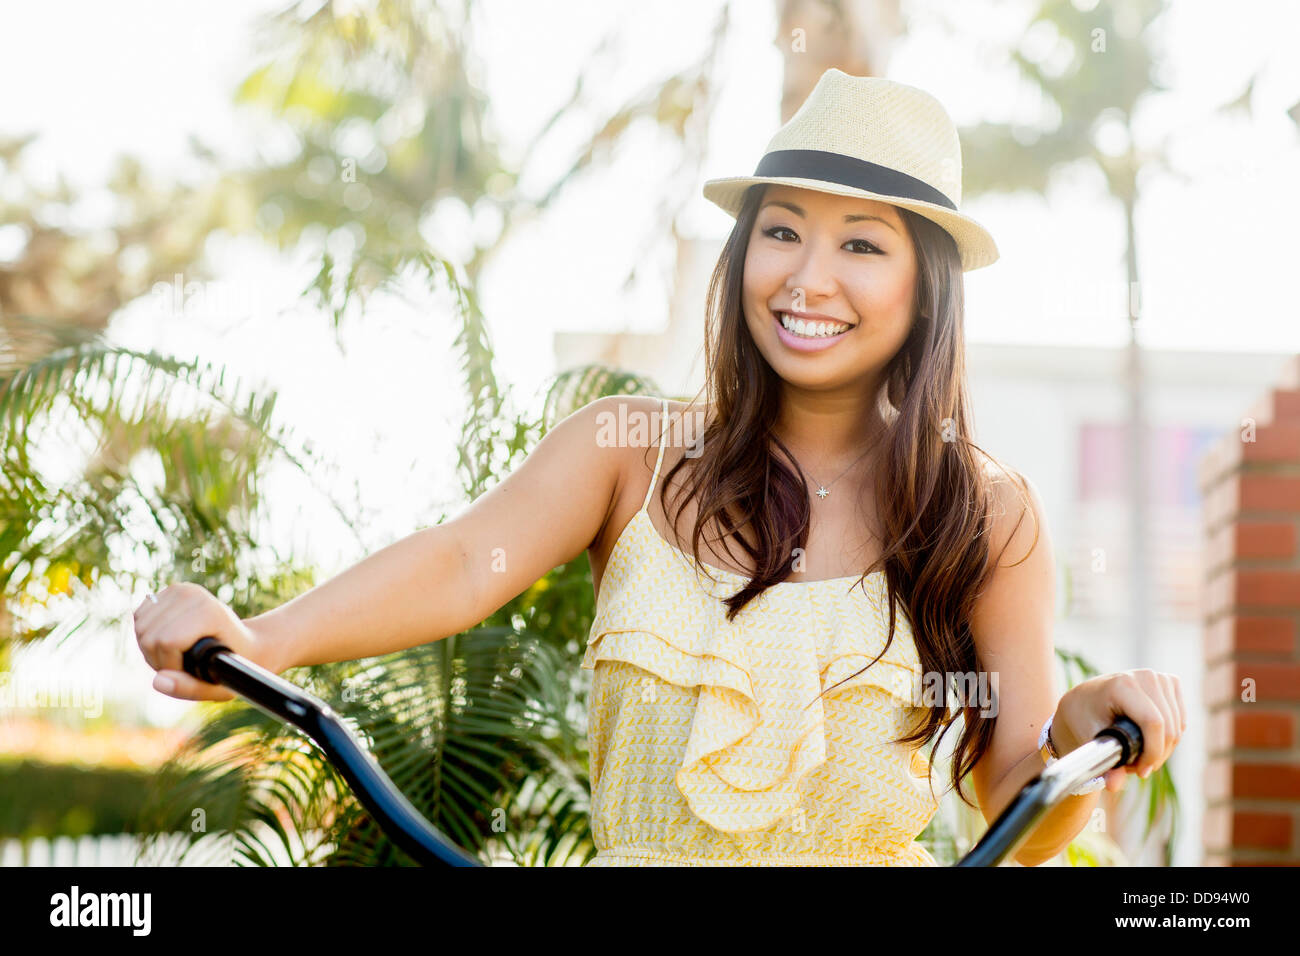 Mixed Race woman riding bicycle Banque D'Images